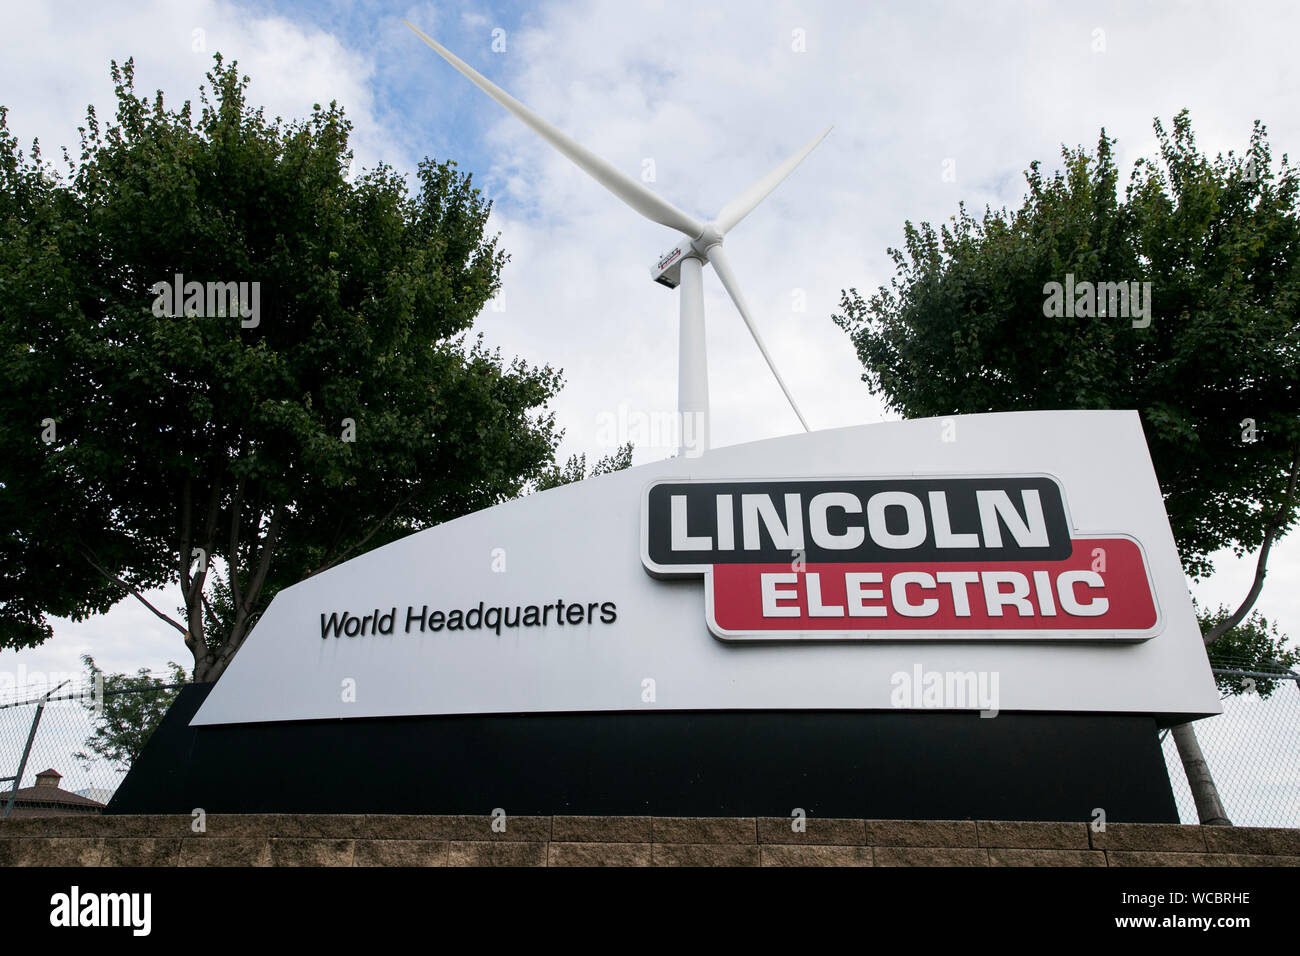 Lincoln Electric Logo High Resolution Stock Photography And Images Alamy